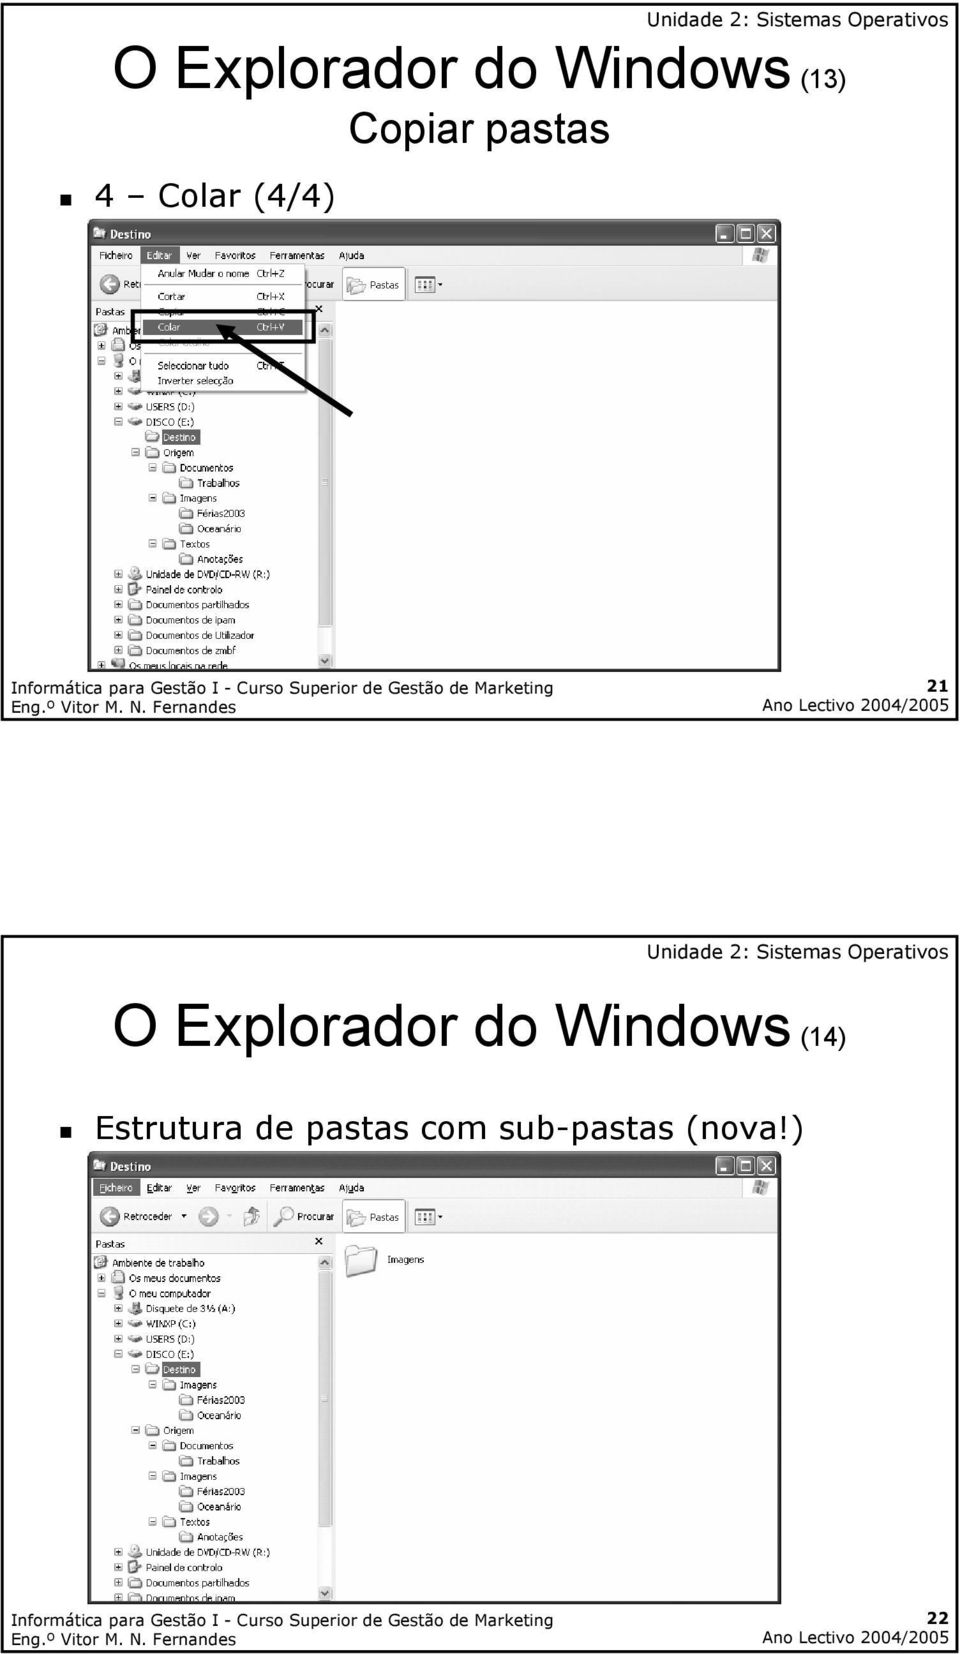 Explorador do Windows (14)